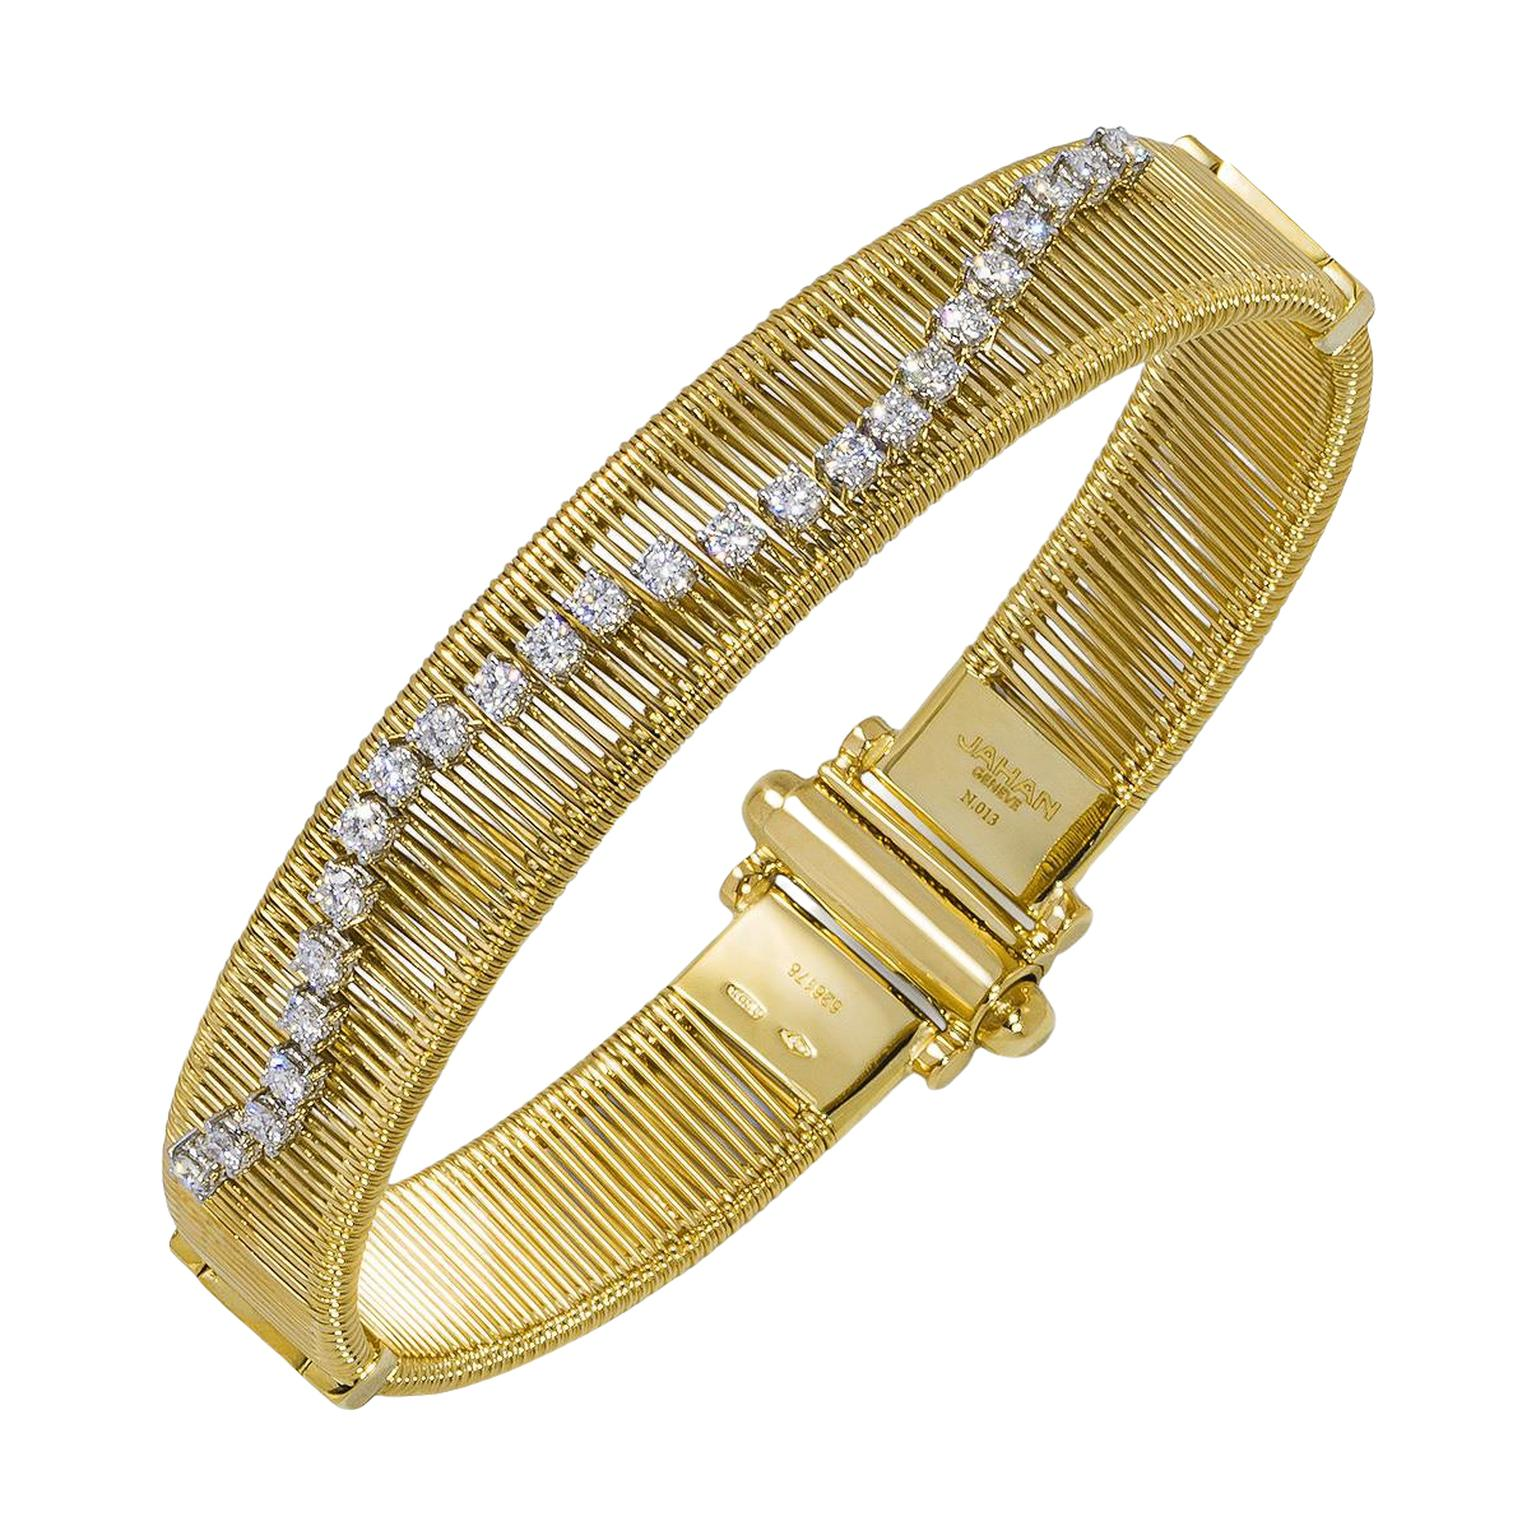 Nour by Jahan bracelet from the Dancing diamonds collection £7,920